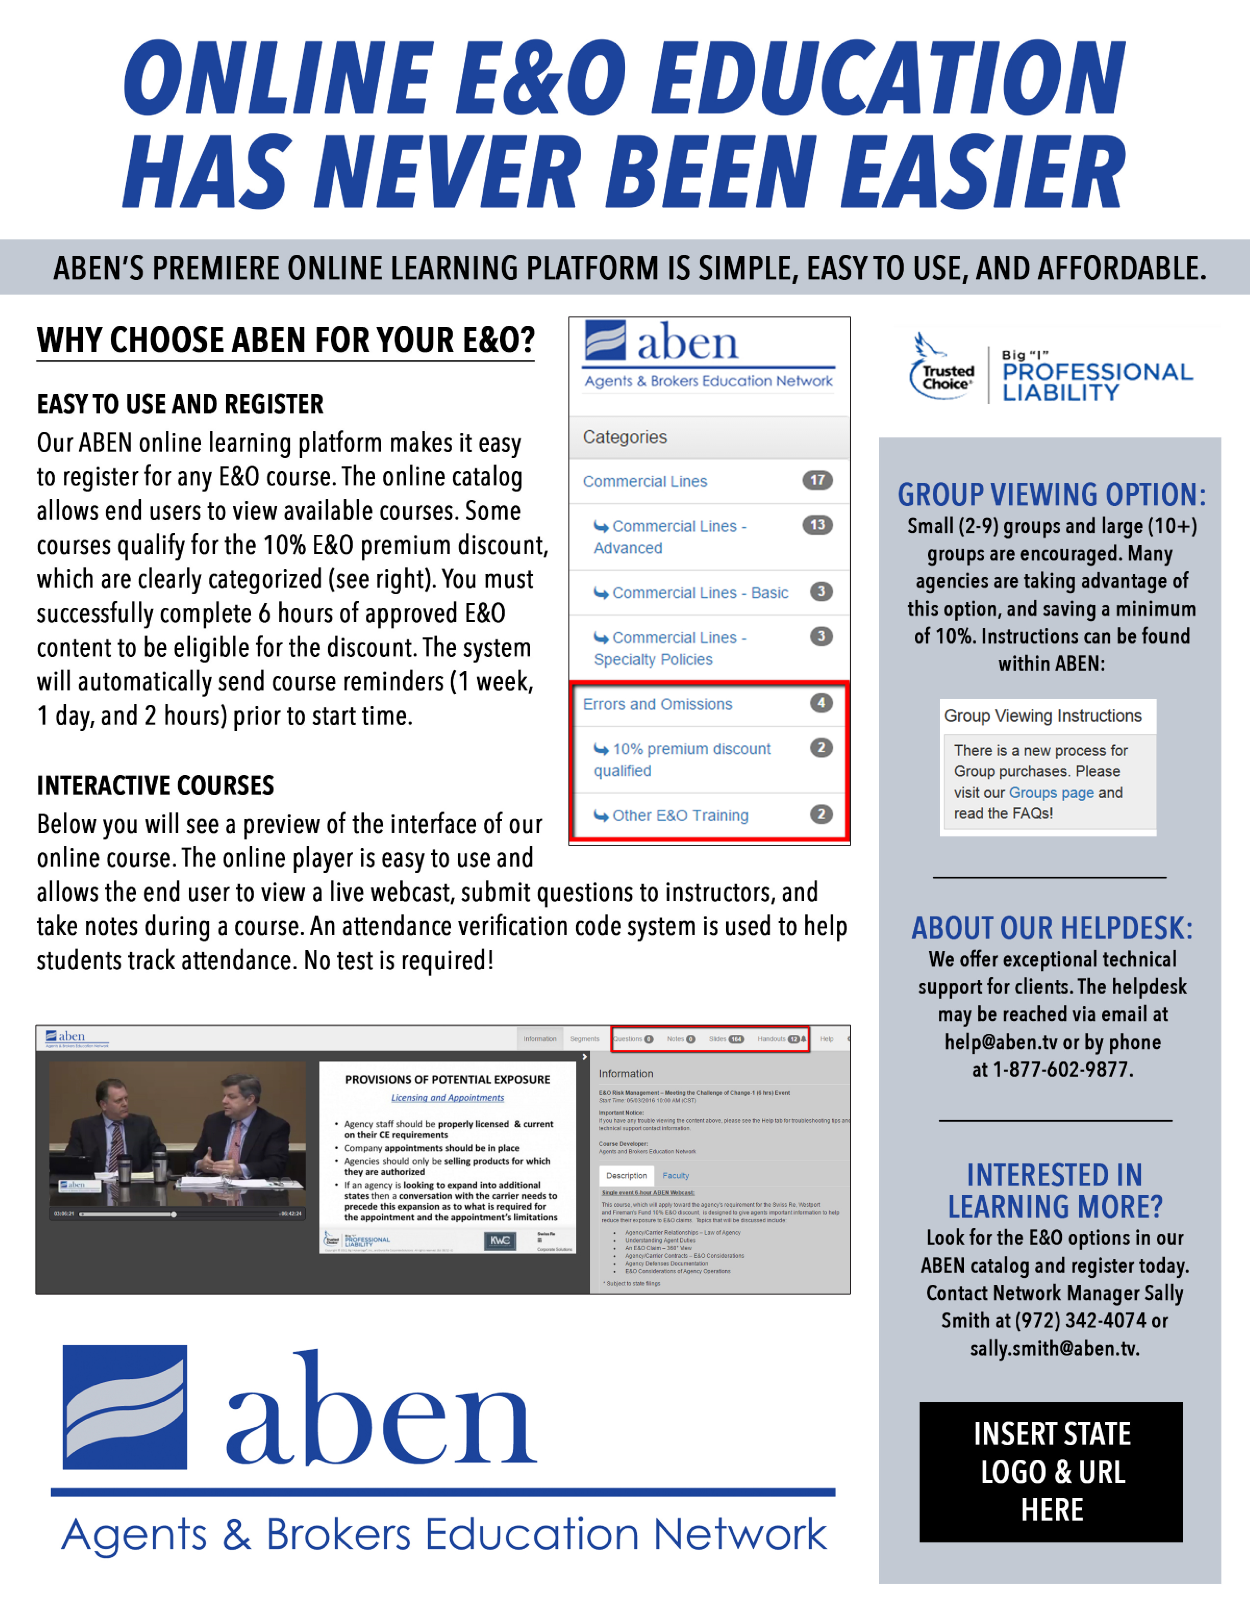 ABEN-flyer-EO_for_end_users_FINAL.jpg